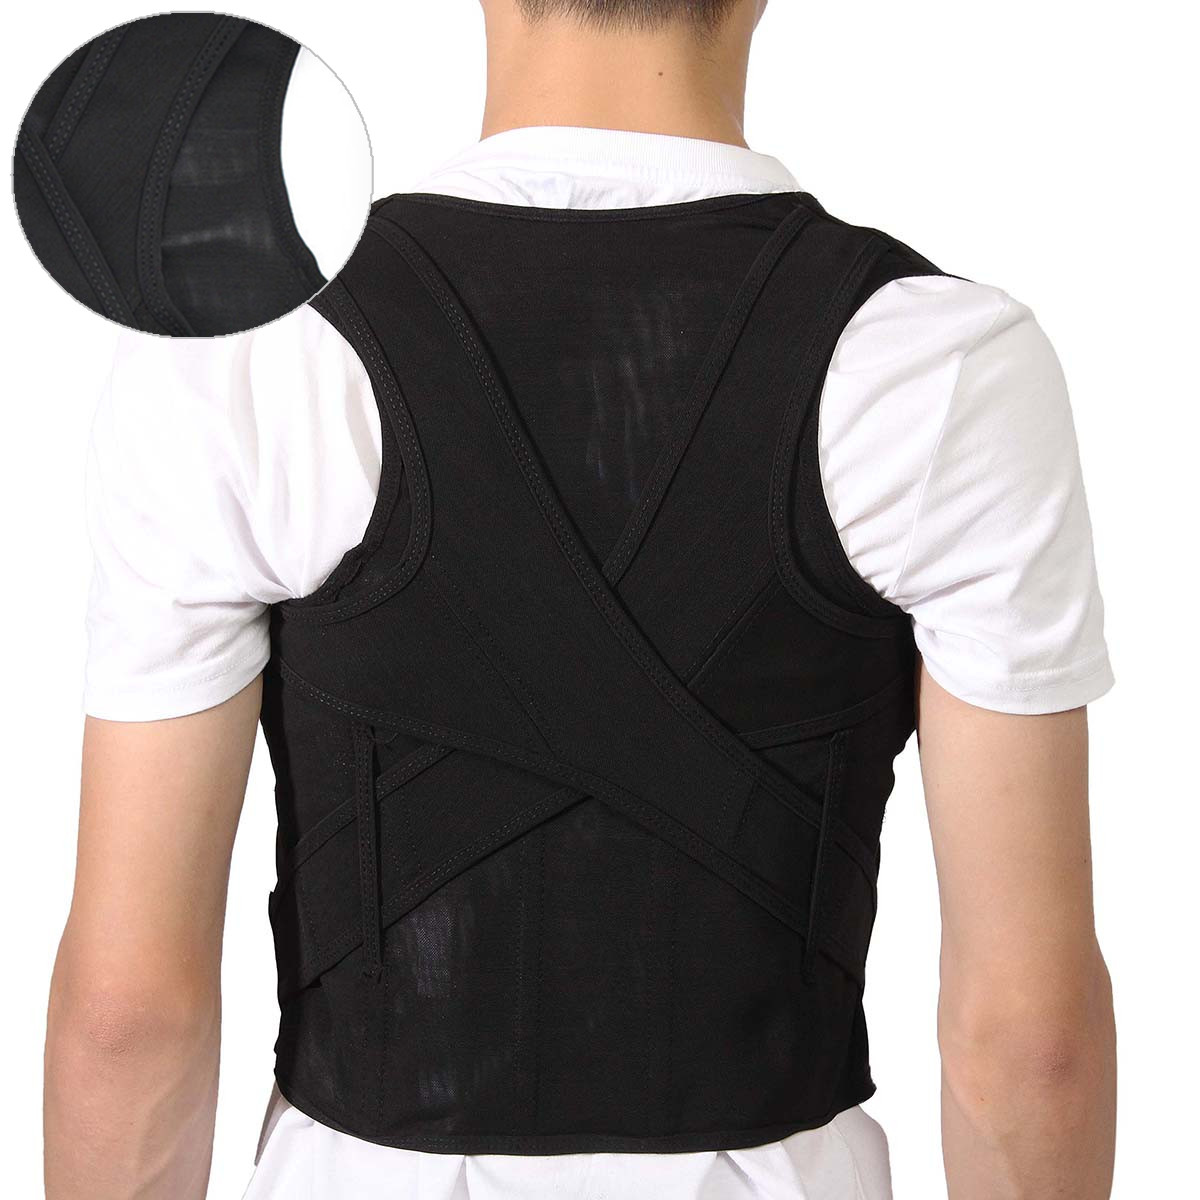 M/XL/XXXL Mesh Breathable Adjustable Back Support Posture Corrector Straightener Brace Shoulder Back Waist lumbar Band Belt Pain Relief For Men / Women Child Teenager